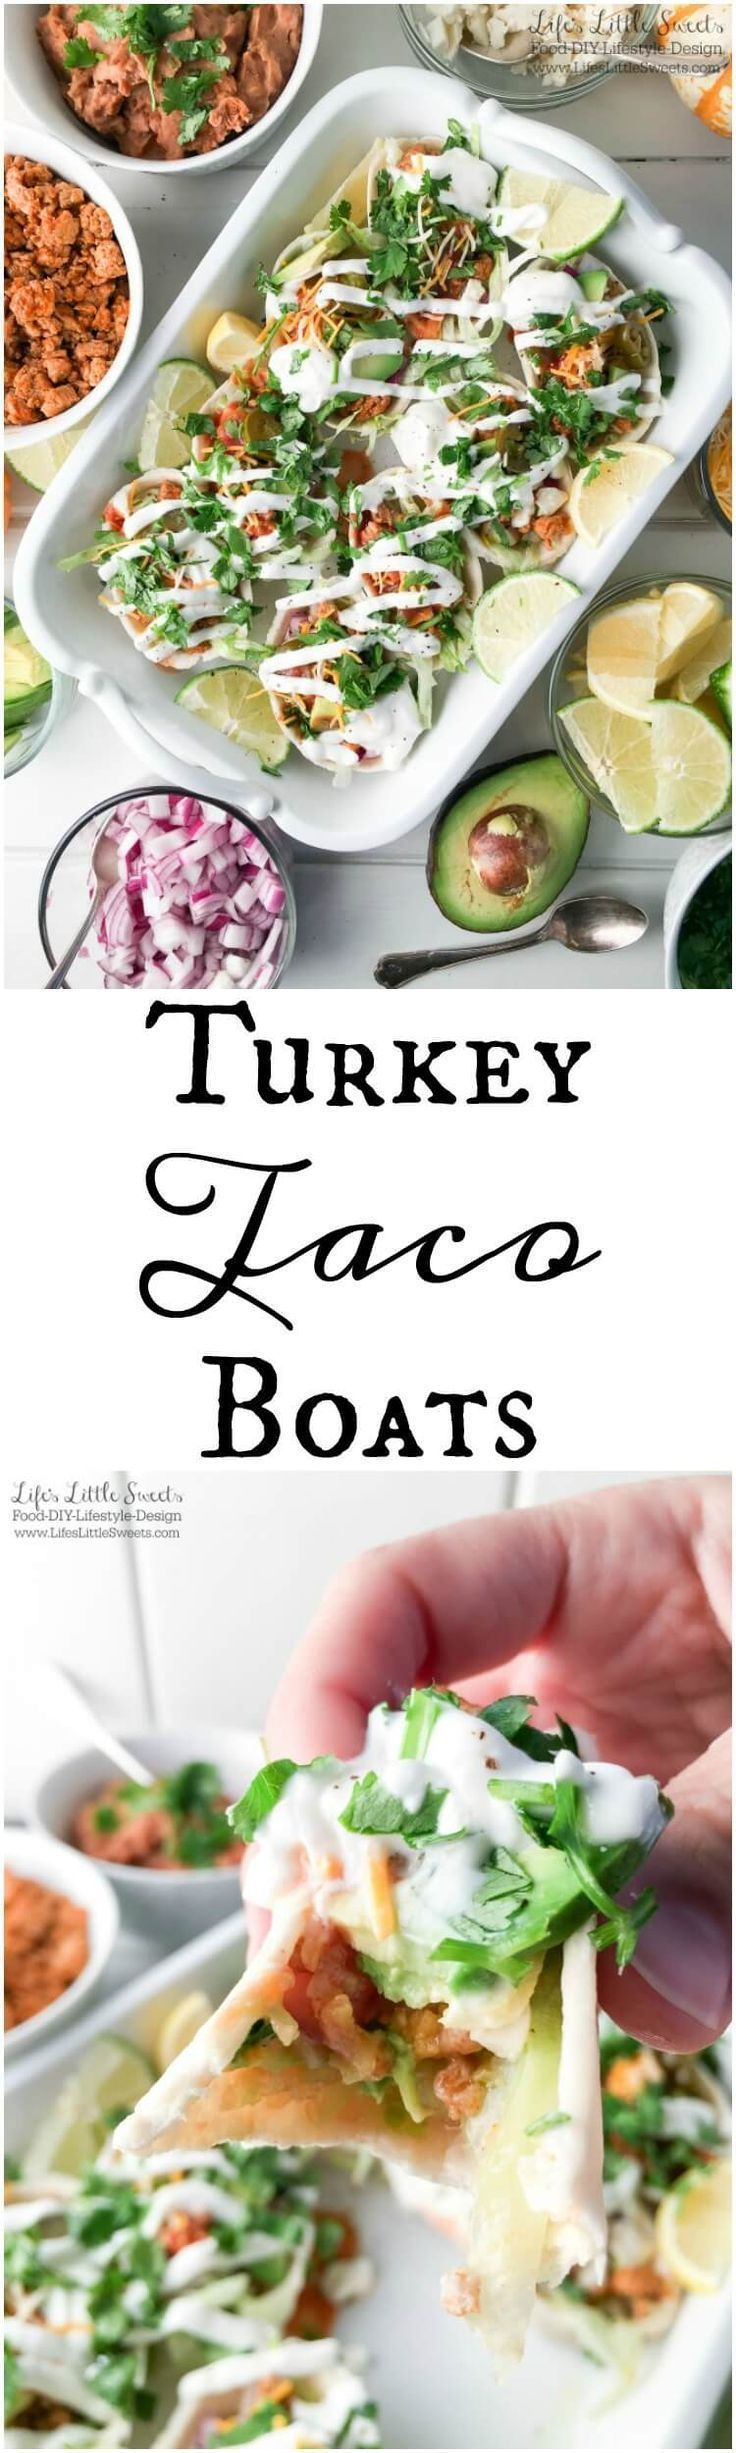 Turkey Taco Boats #groundturkeytacos Turkey Taco Boats are a healthier take on traditional tacos with lean ground turkey and fat free Greek yogurt instead of sour cream. They are made with Old El Paso tortilla boats & tacos for the perfect way to feed a crowd on Game Day! #AD #OEPGameDay #S #groundturkeytacos Turkey Taco Boats #groundturkeytacos Turkey Taco Boats are a healthier take on traditional tacos with lean ground turkey and fat free Greek yogurt instead of sour cream. They are made with #groundturkeytacos